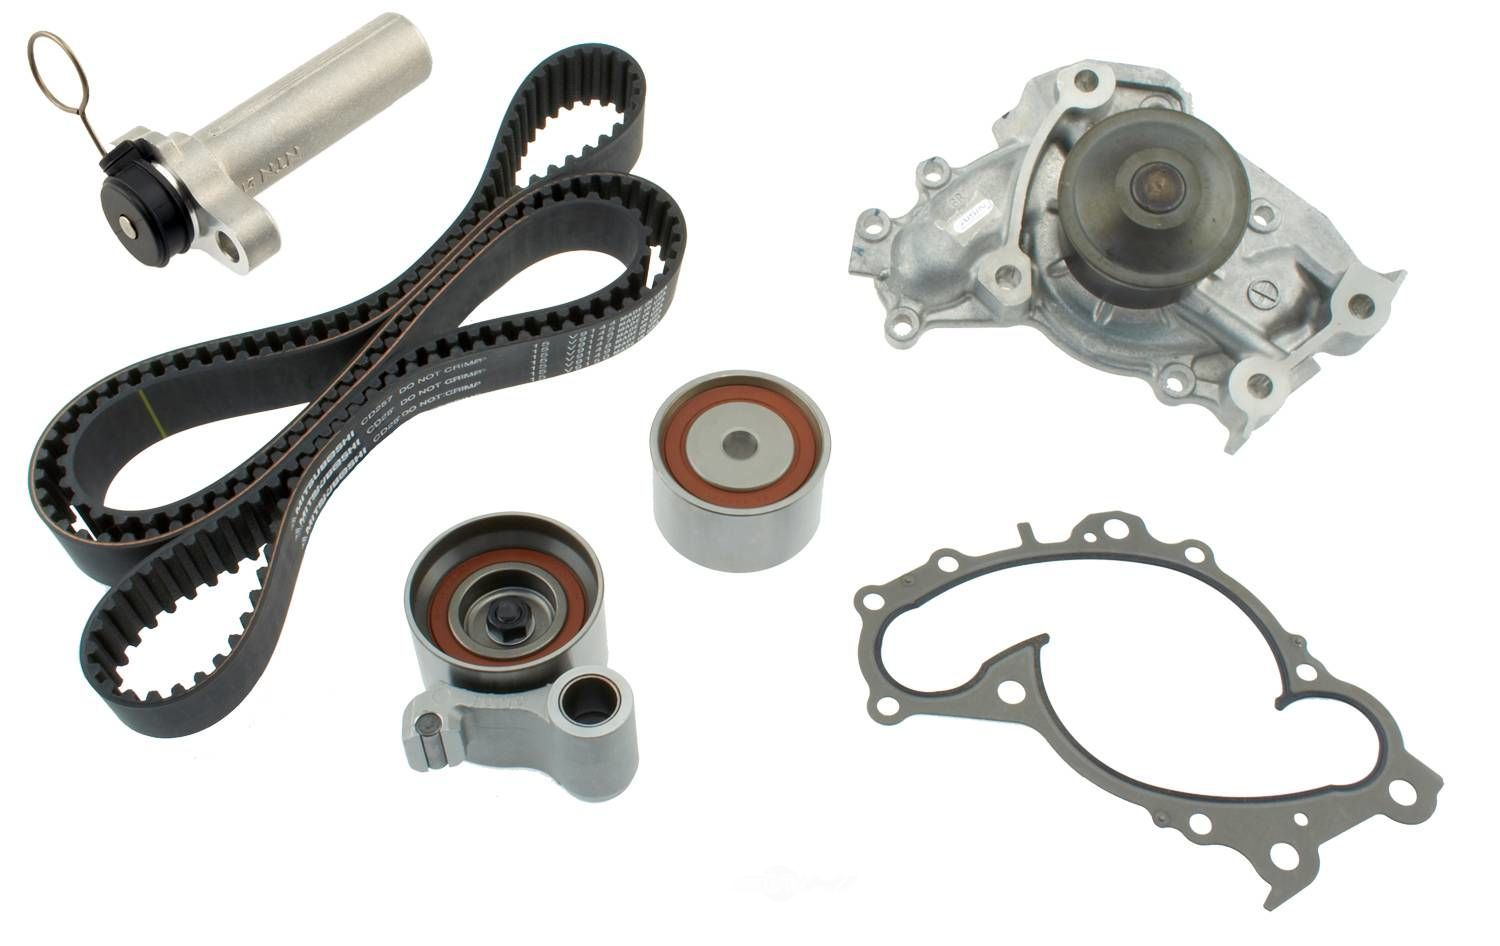 AISIN WORLD CORP. OF AMERICA - Engine Timing Belt Component Kit W/hydraulic Tensioner - AIS TKT-024